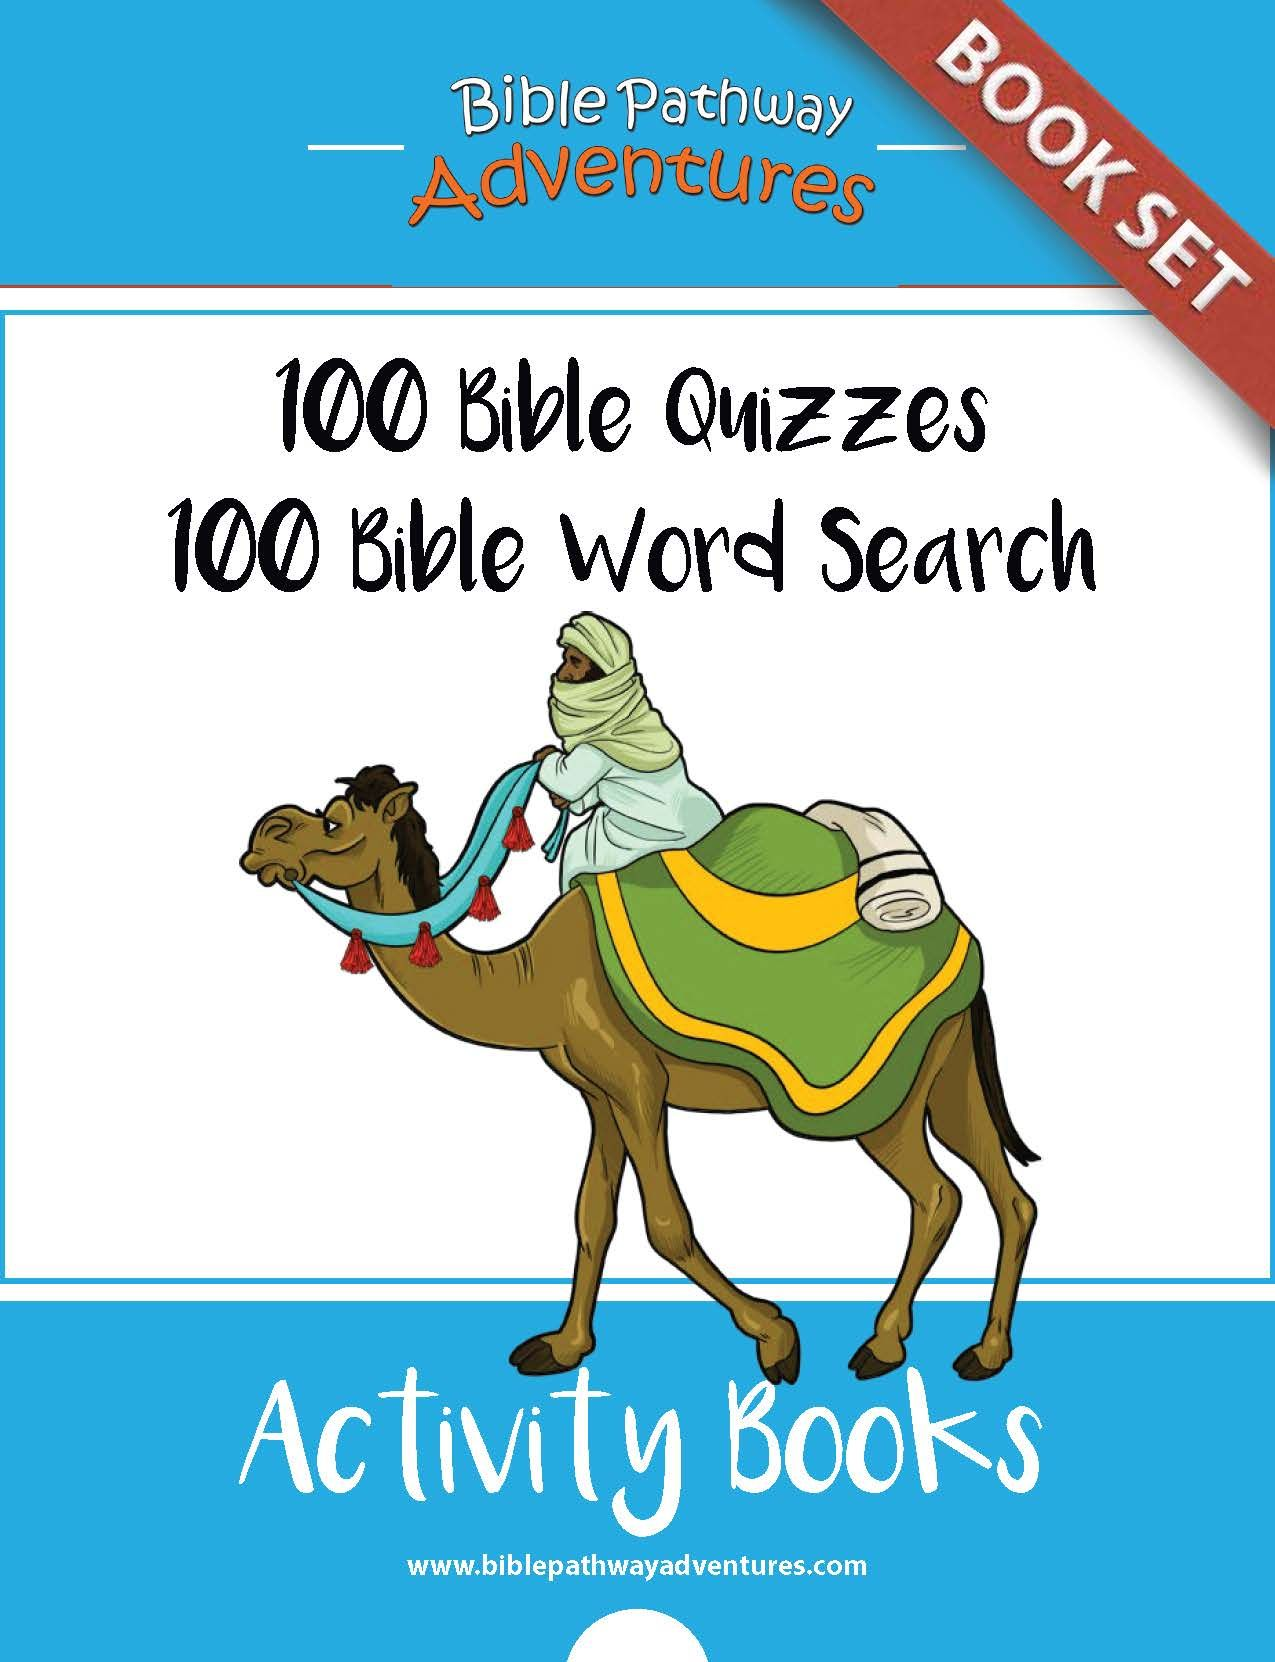 200 Bible Quizzes And Word Search Puzzles